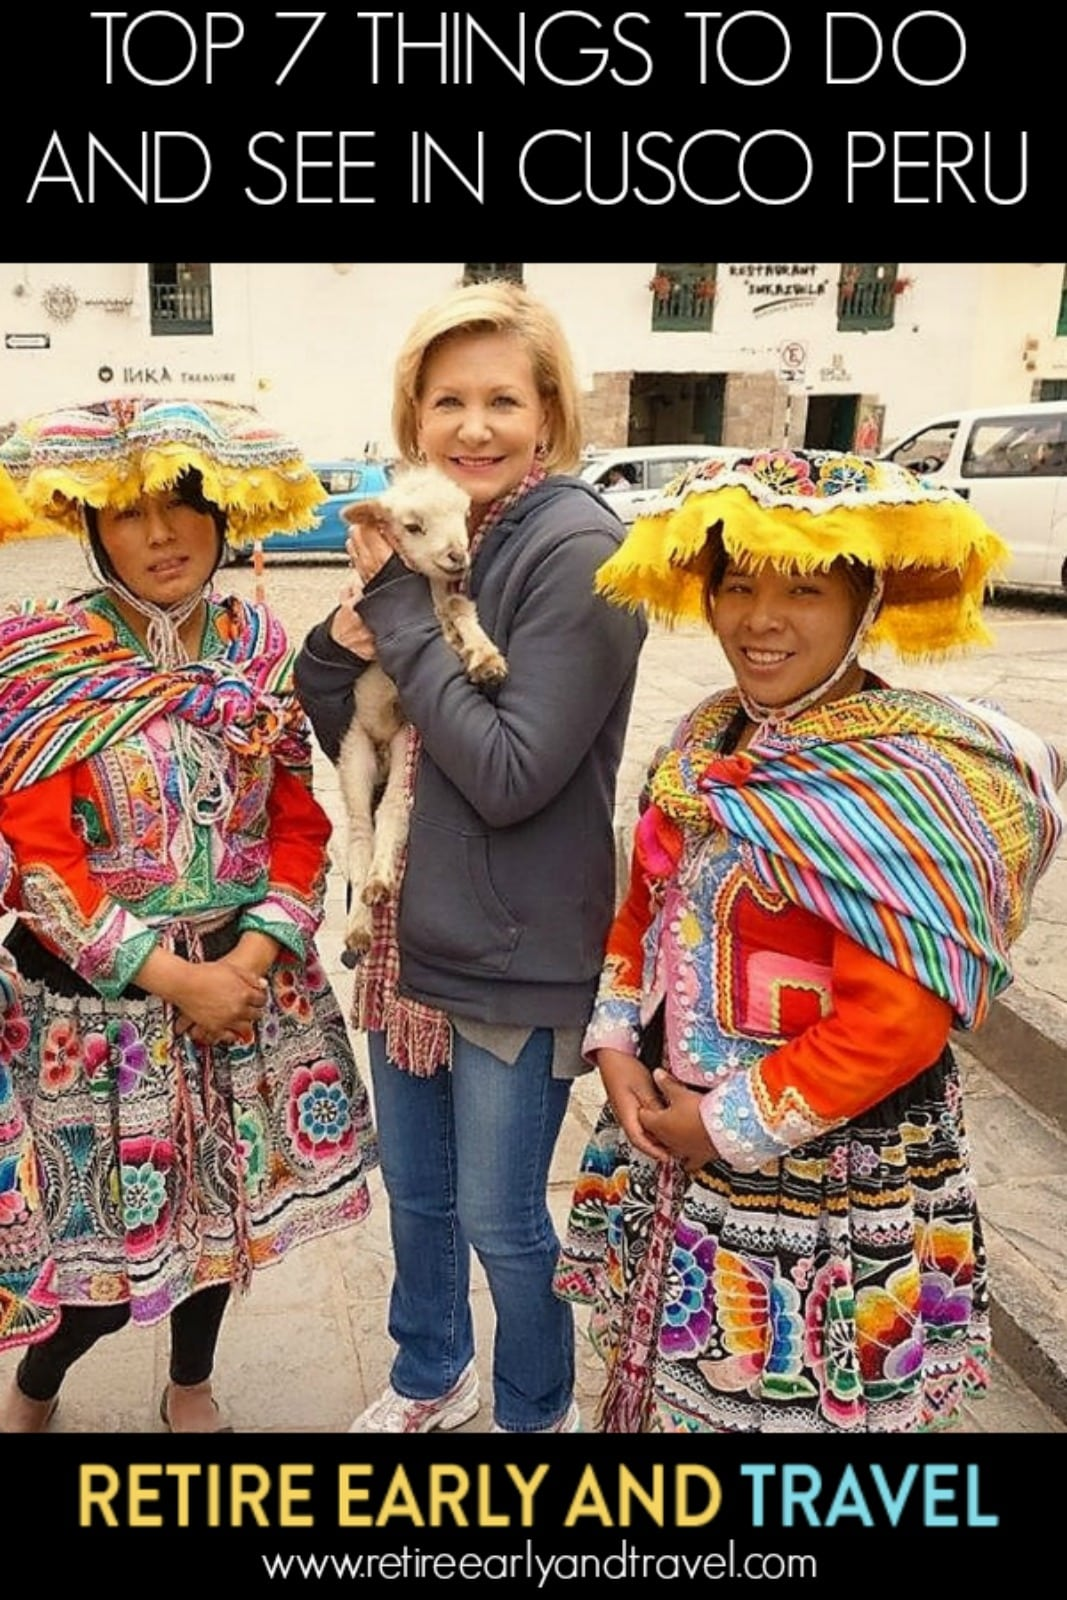 Top 7 Things to Do in Cusco Peru – Best of the Best